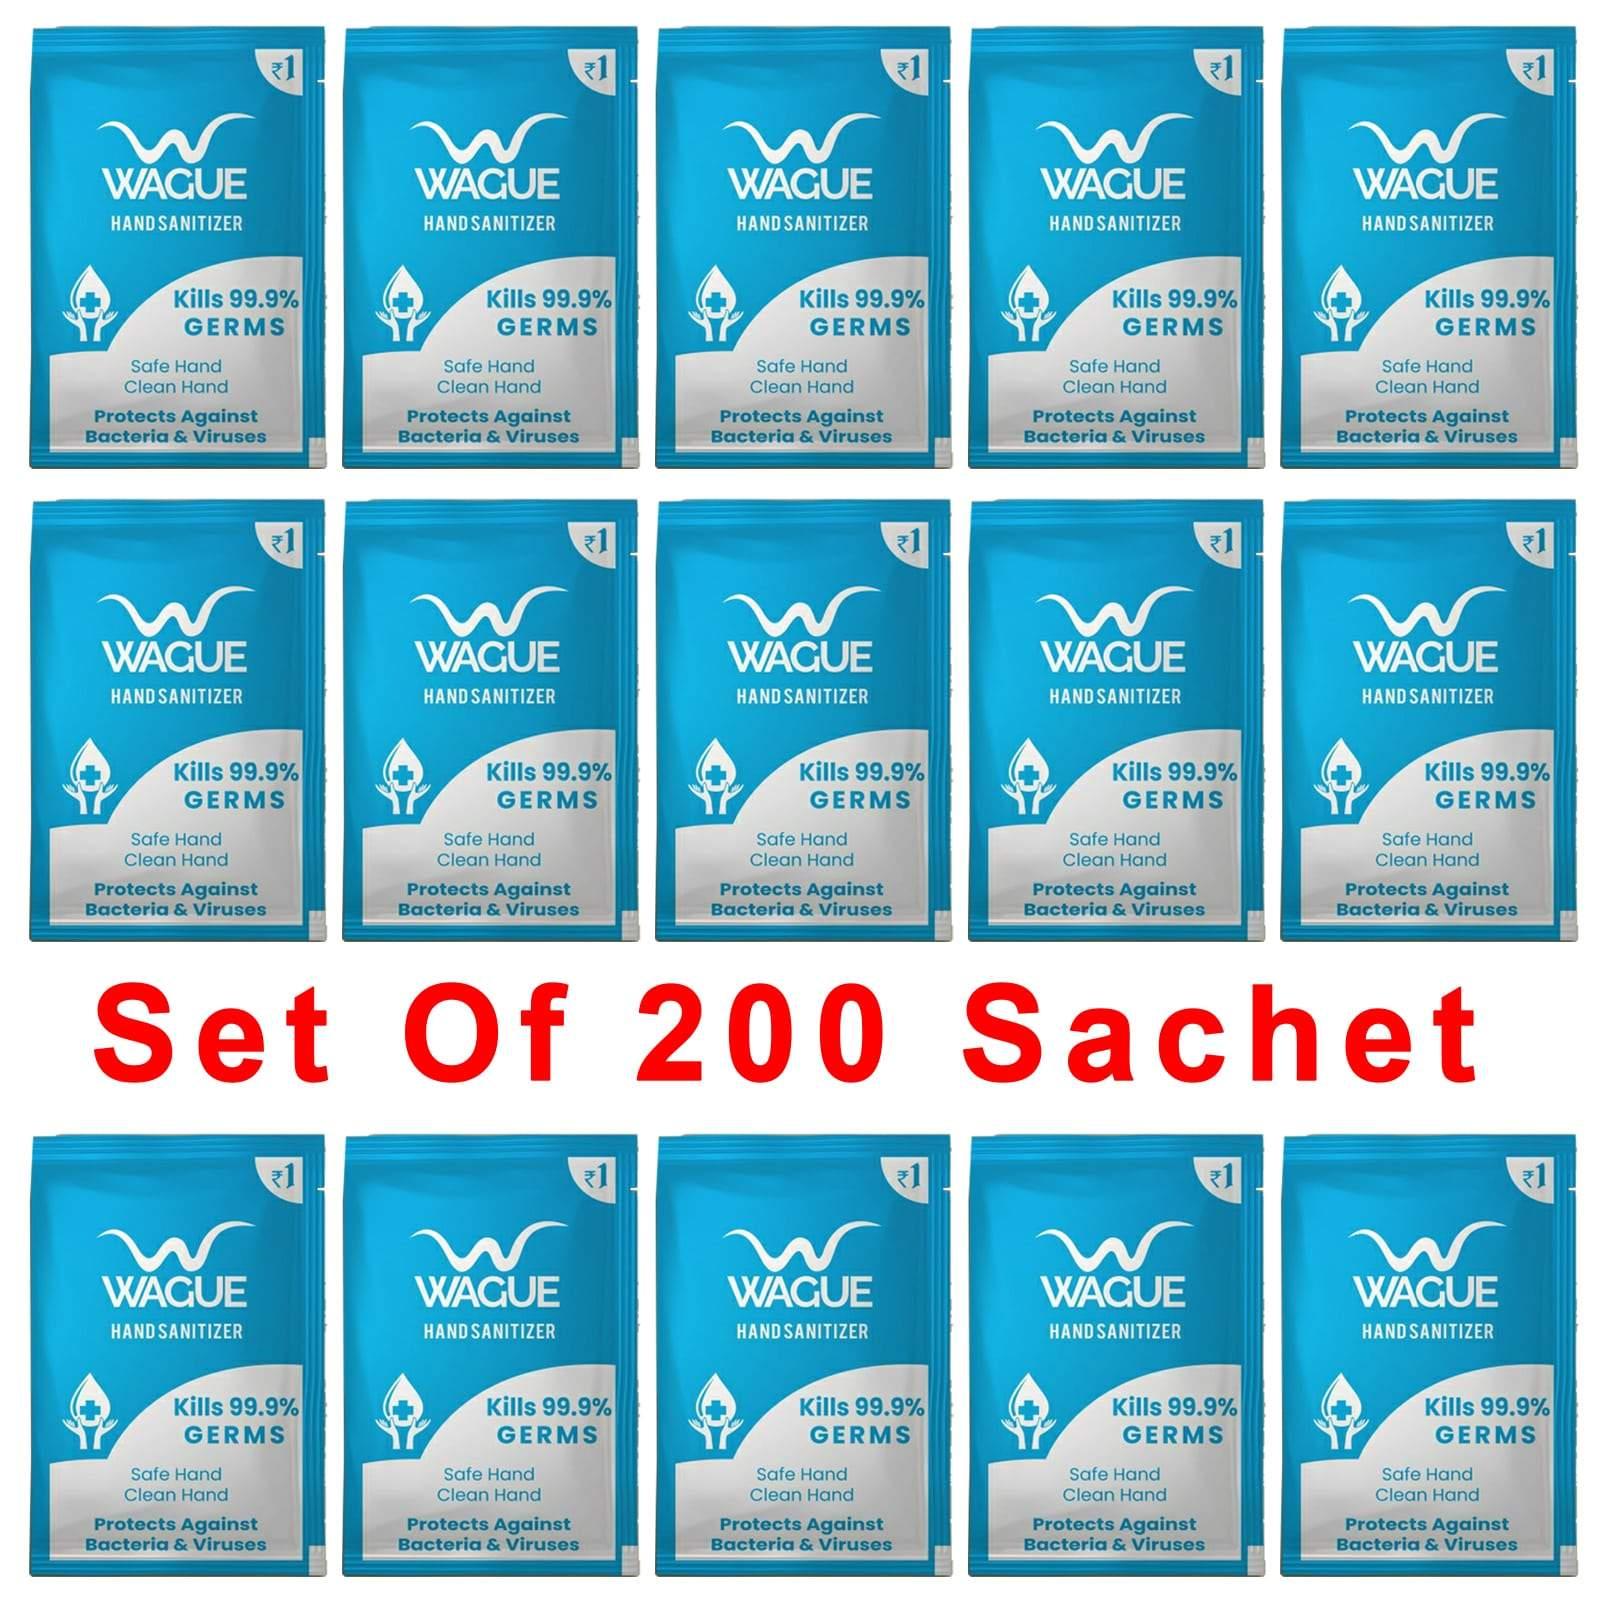 Wague Hand Sanitizer 2 ml Sachet for Party, Marriage Function, Event, Hotels, Office Staff, Set of 200, Pack of 1